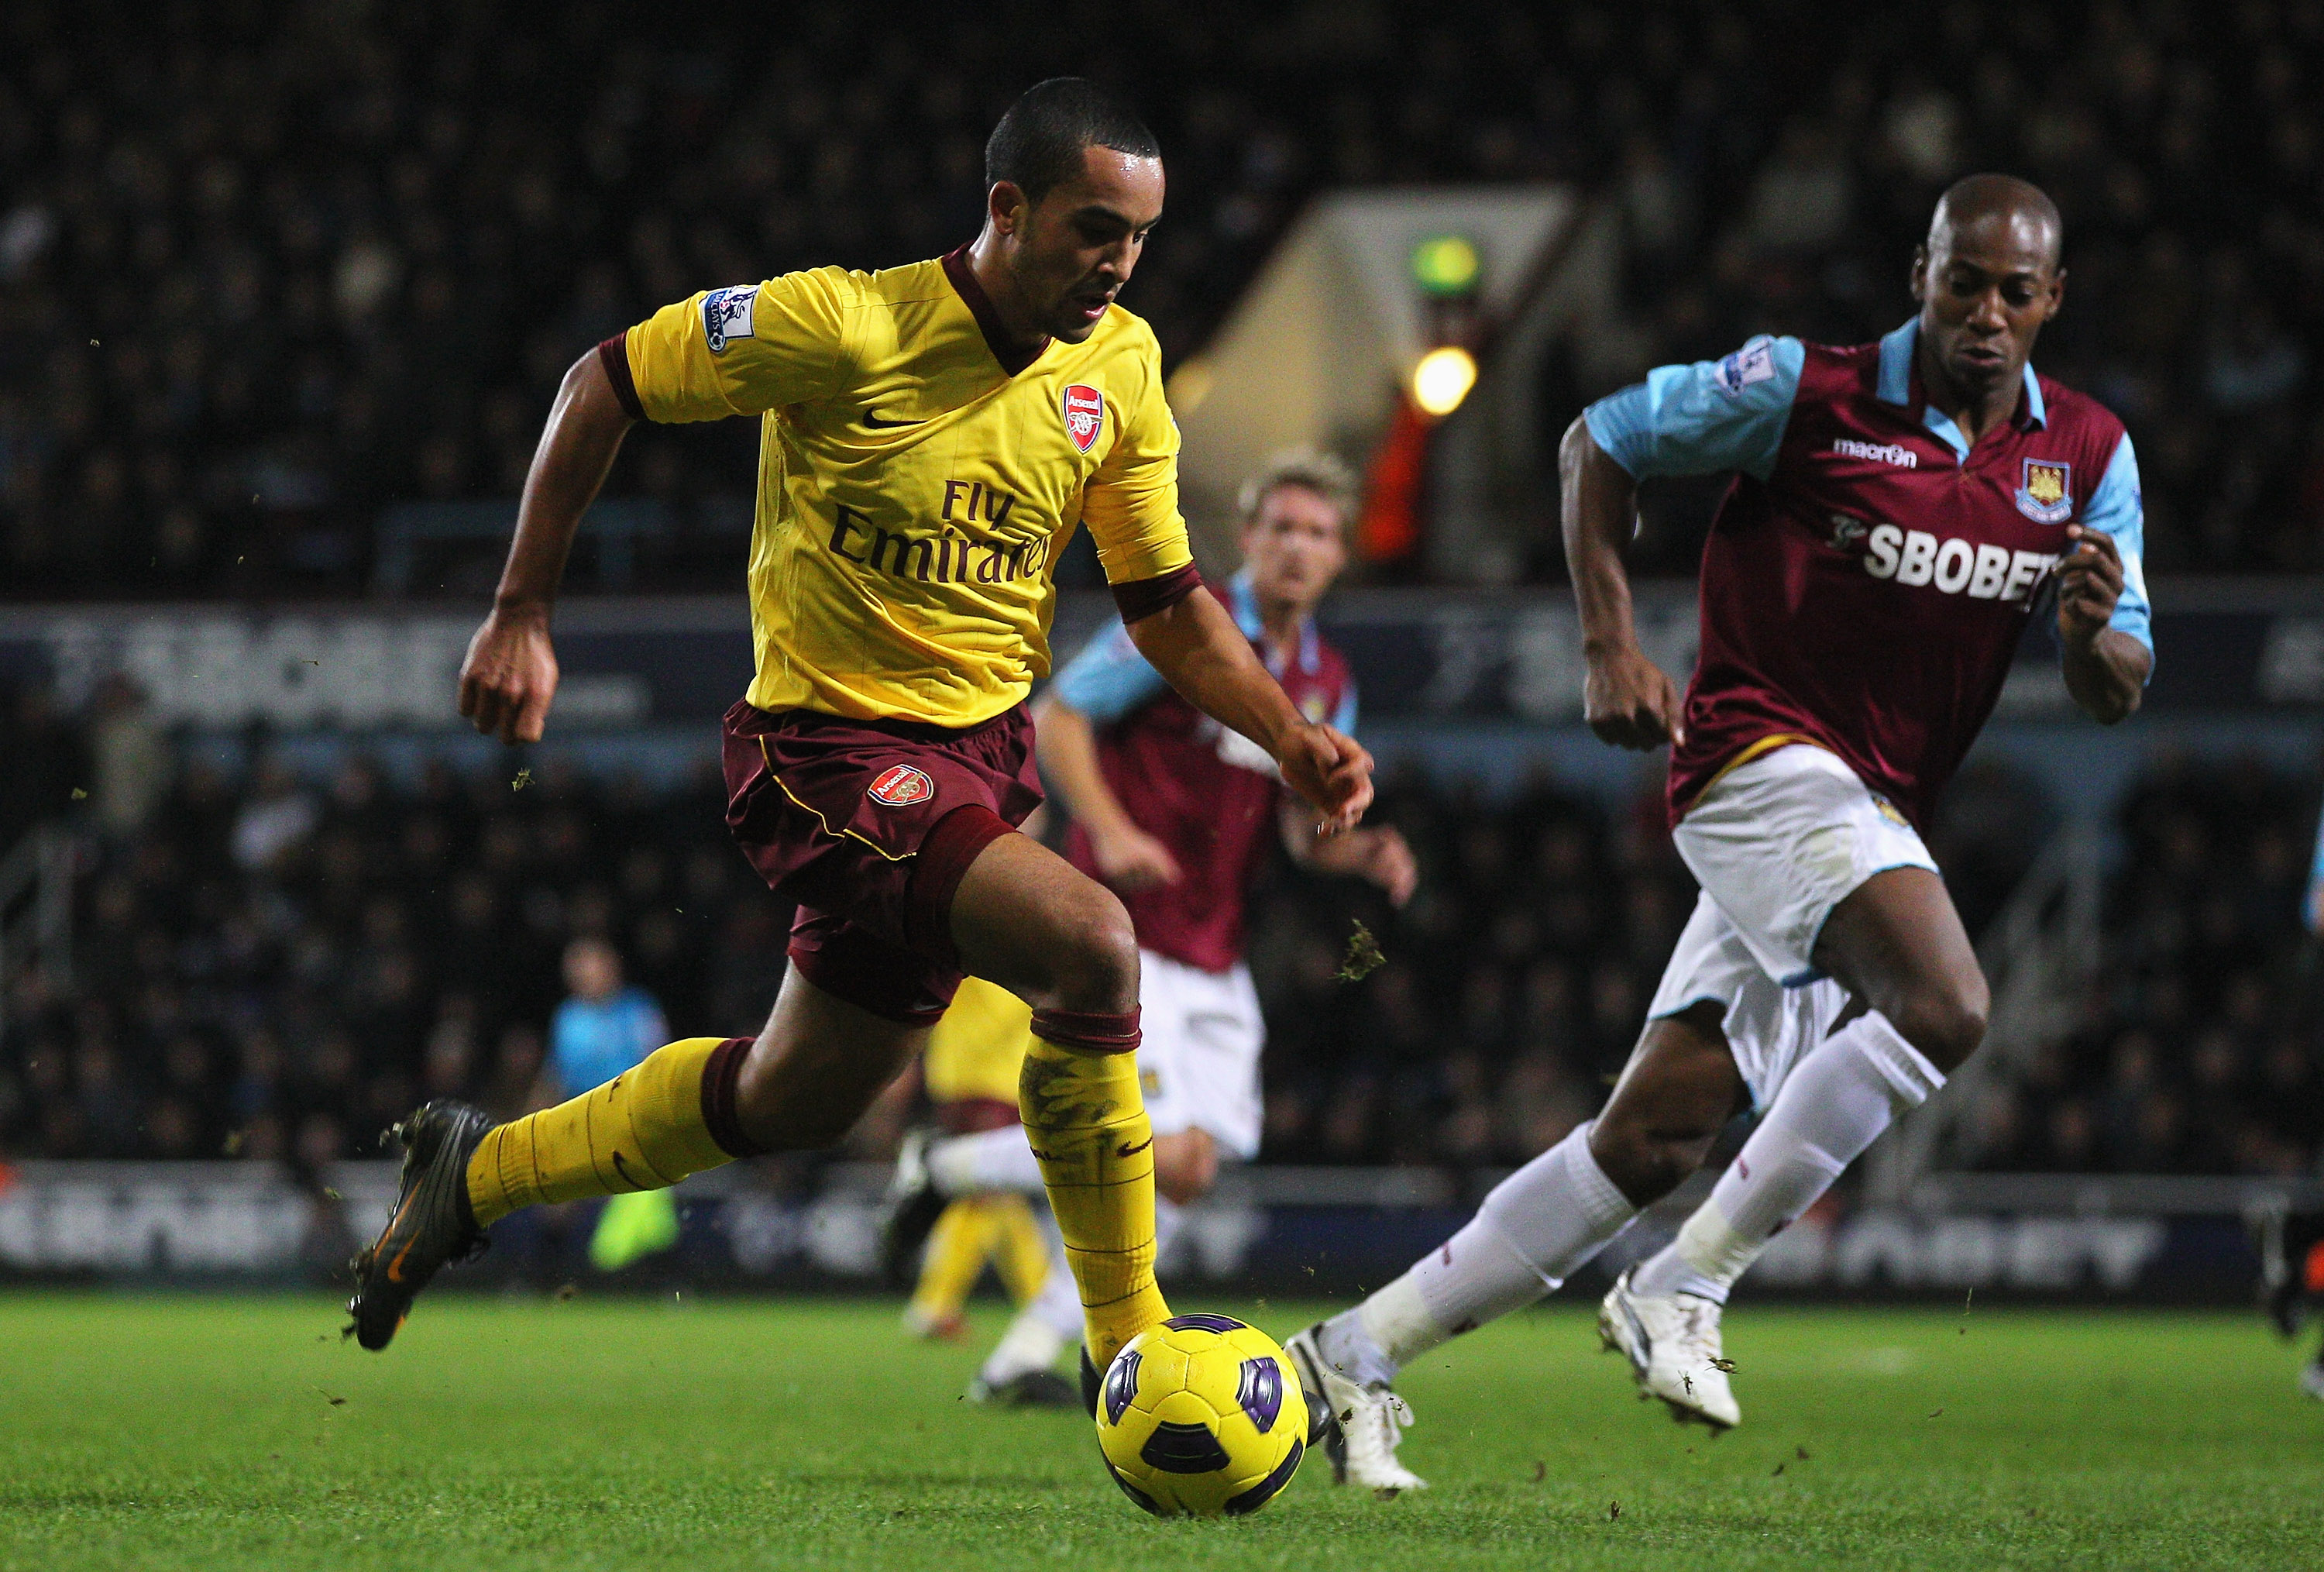 LONDON, ENGLAND - JANUARY 15:  Theo Walcott of Arsenal takes the ball past Luis Boa Morte of West Ham United during the Barclays Premier League match between West Ham United and Arsenal at the Boleyn Ground on January 15, 2011 in London, England.  (Photo